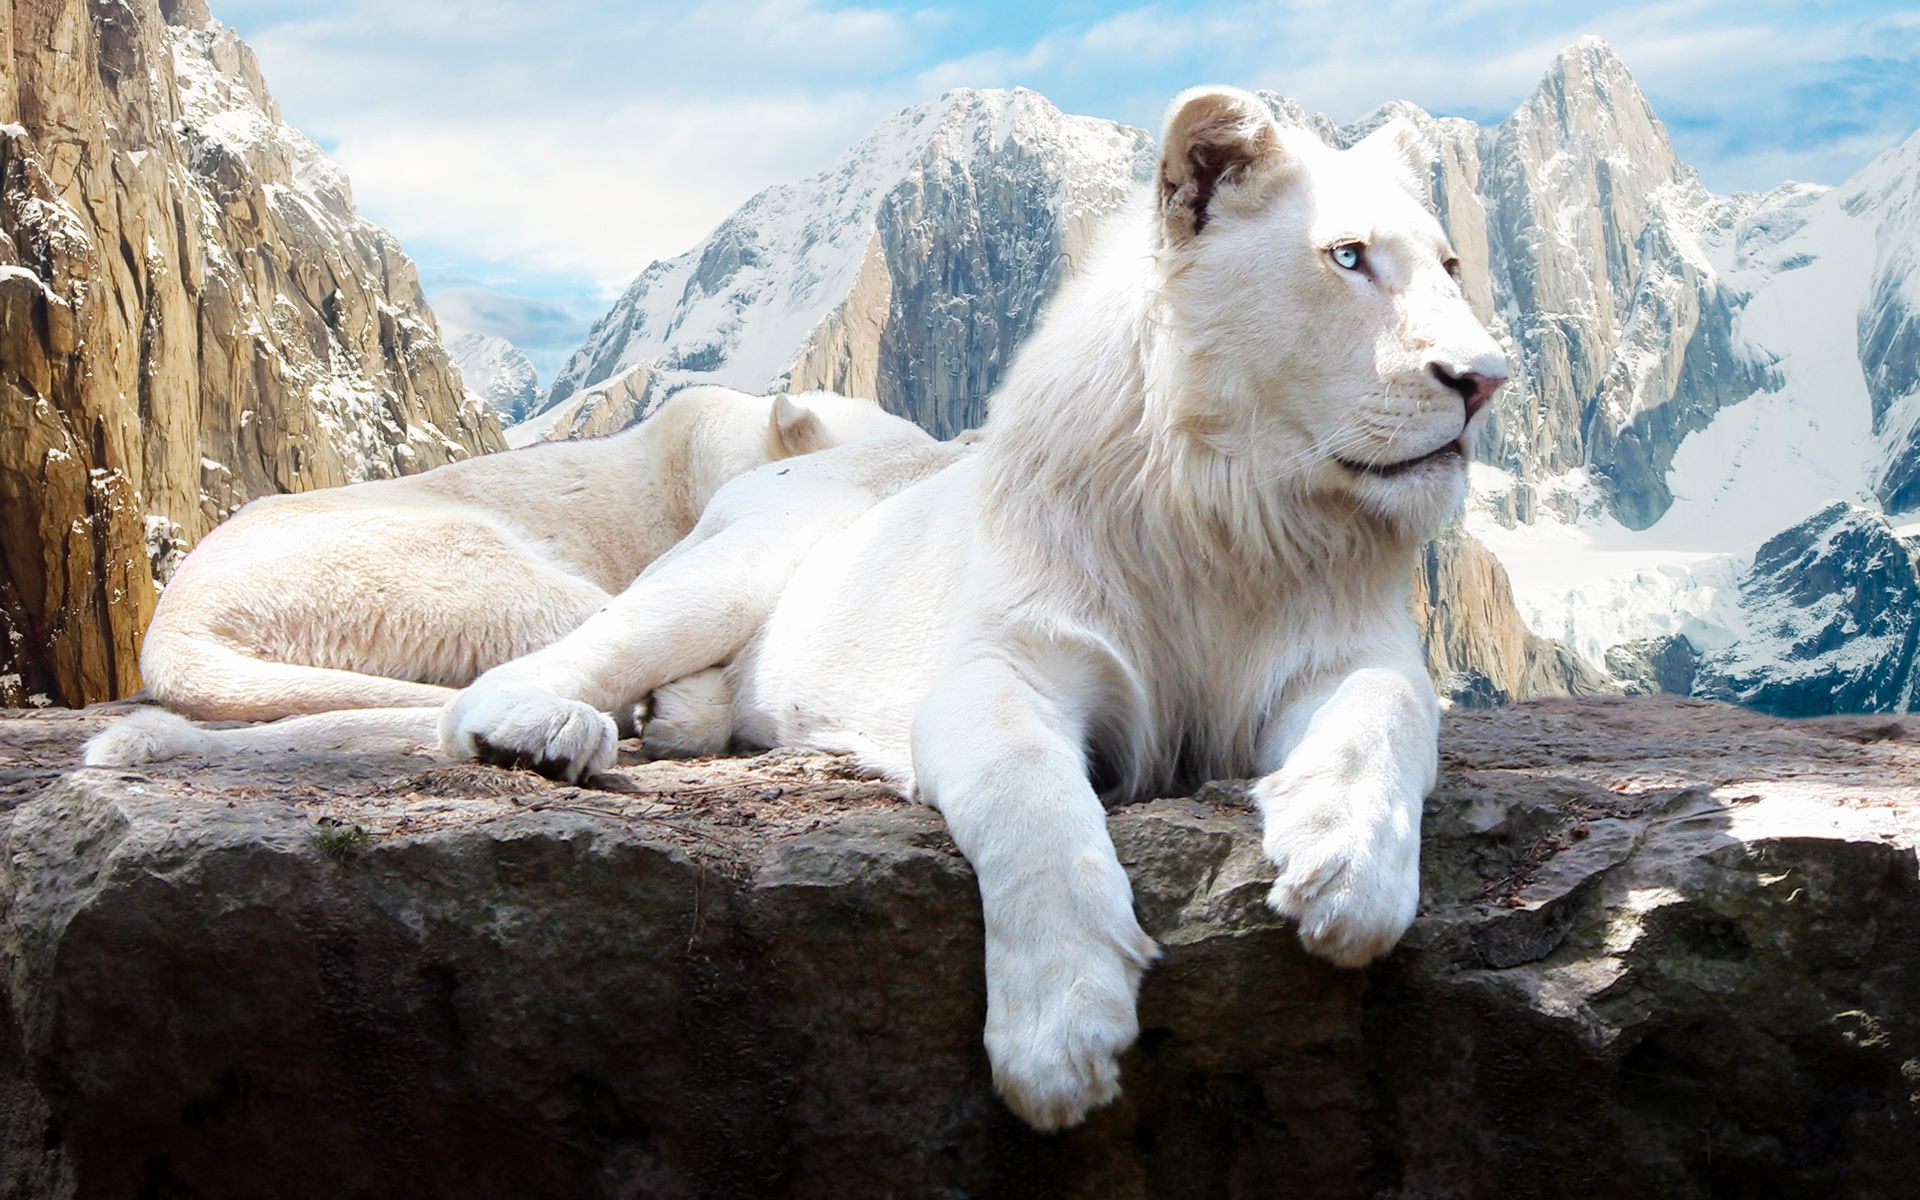 Best Wallpaper Horse Lion - 751159cef1eebf53a2cc19ac854466e4  Perfect Image Reference_21393.jpg